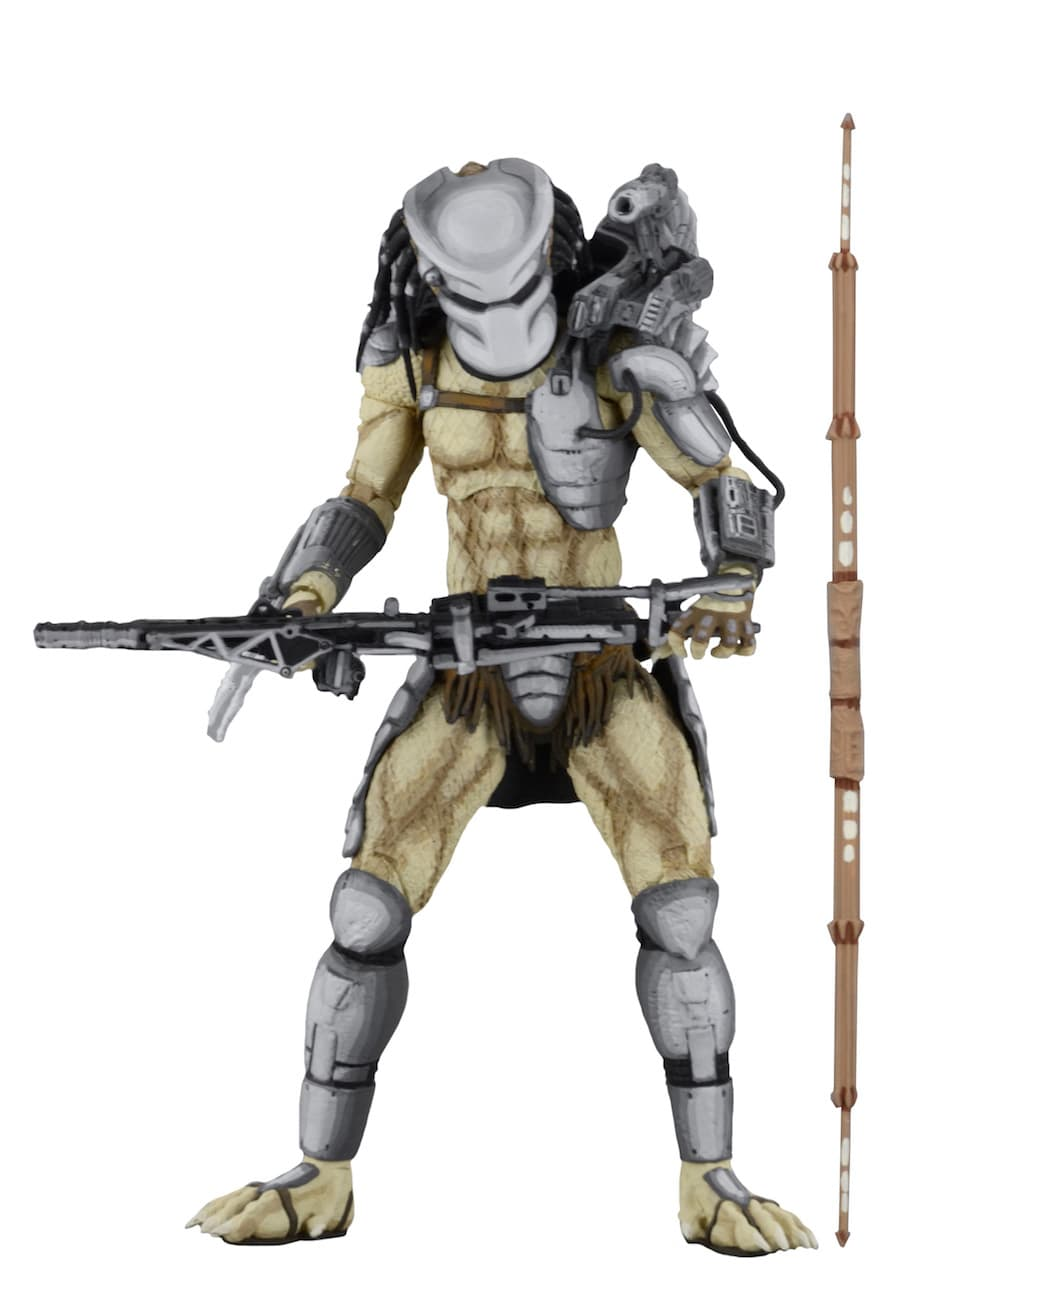 PREDATOR WARRIOR ARCADE FIGURA 20 CM SCALE ACTION FIGURE ALIEN VS PREDATOR